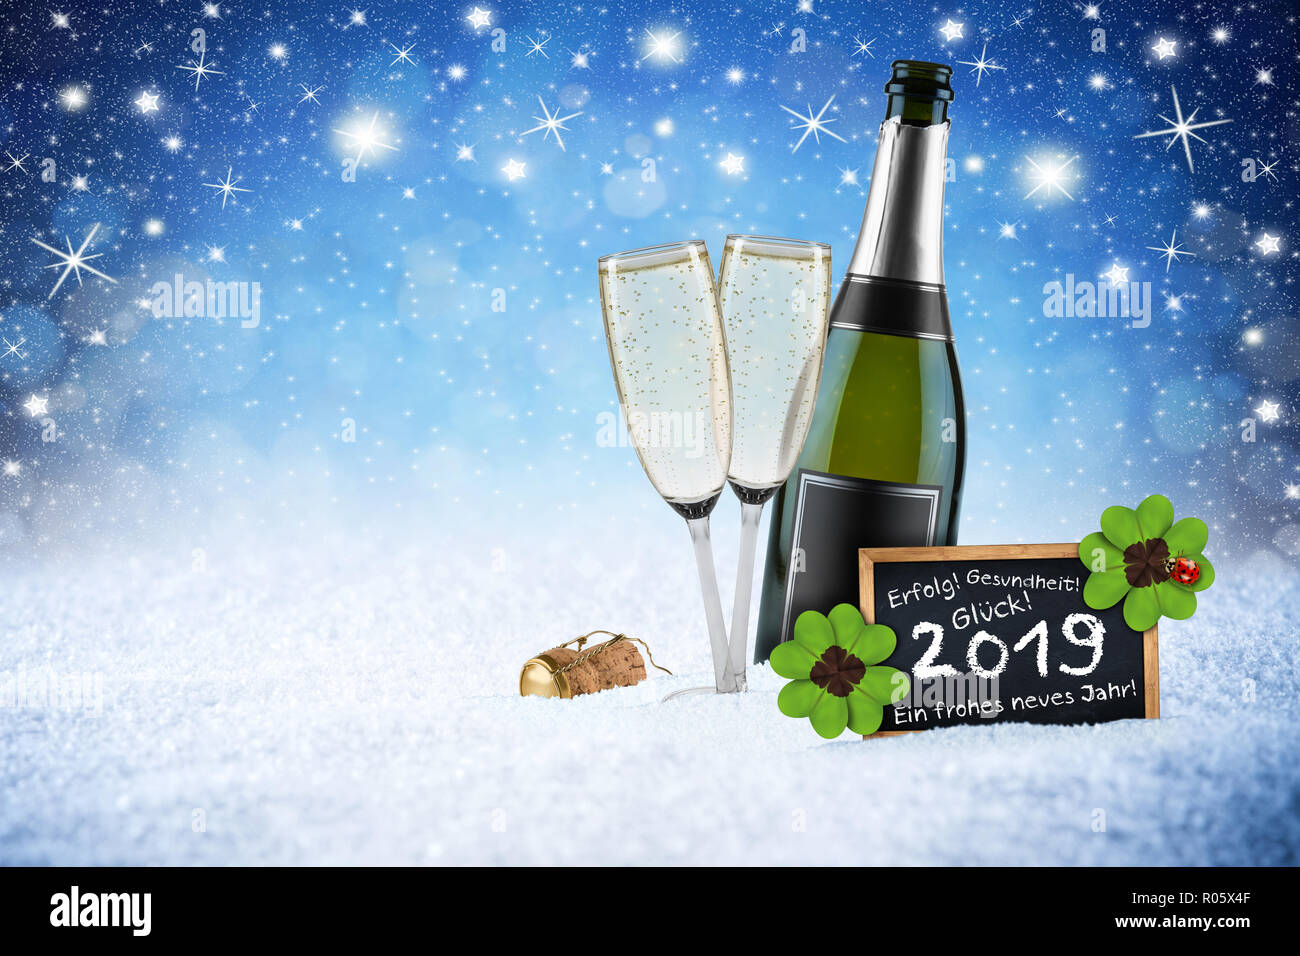 Frohes Neues Jahr Stock Photos & Frohes Neues Jahr Stock Images - Alamy